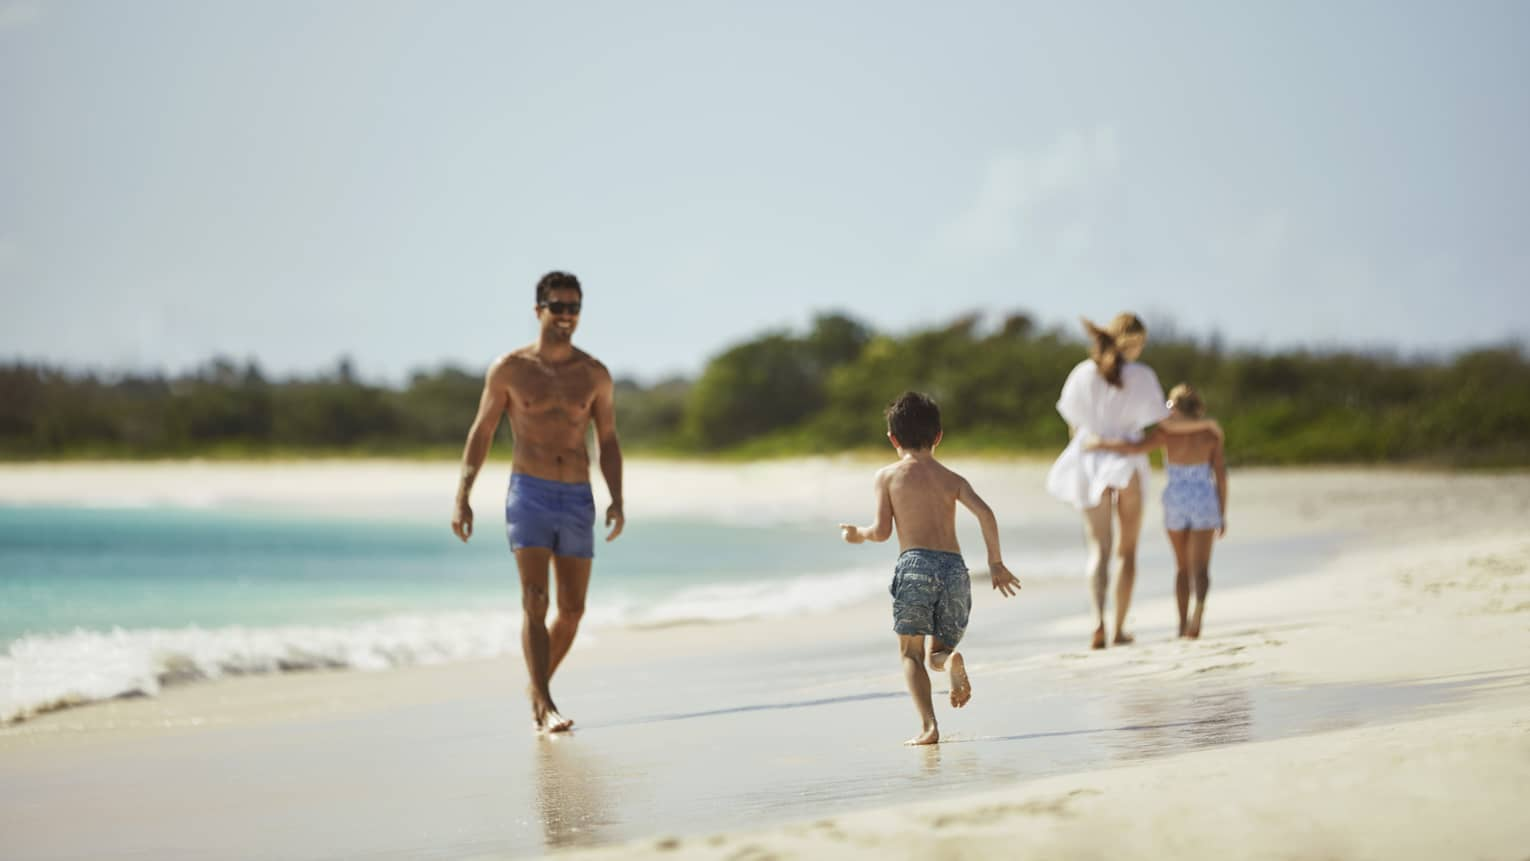 Family runs, plays on sand beach by ocean